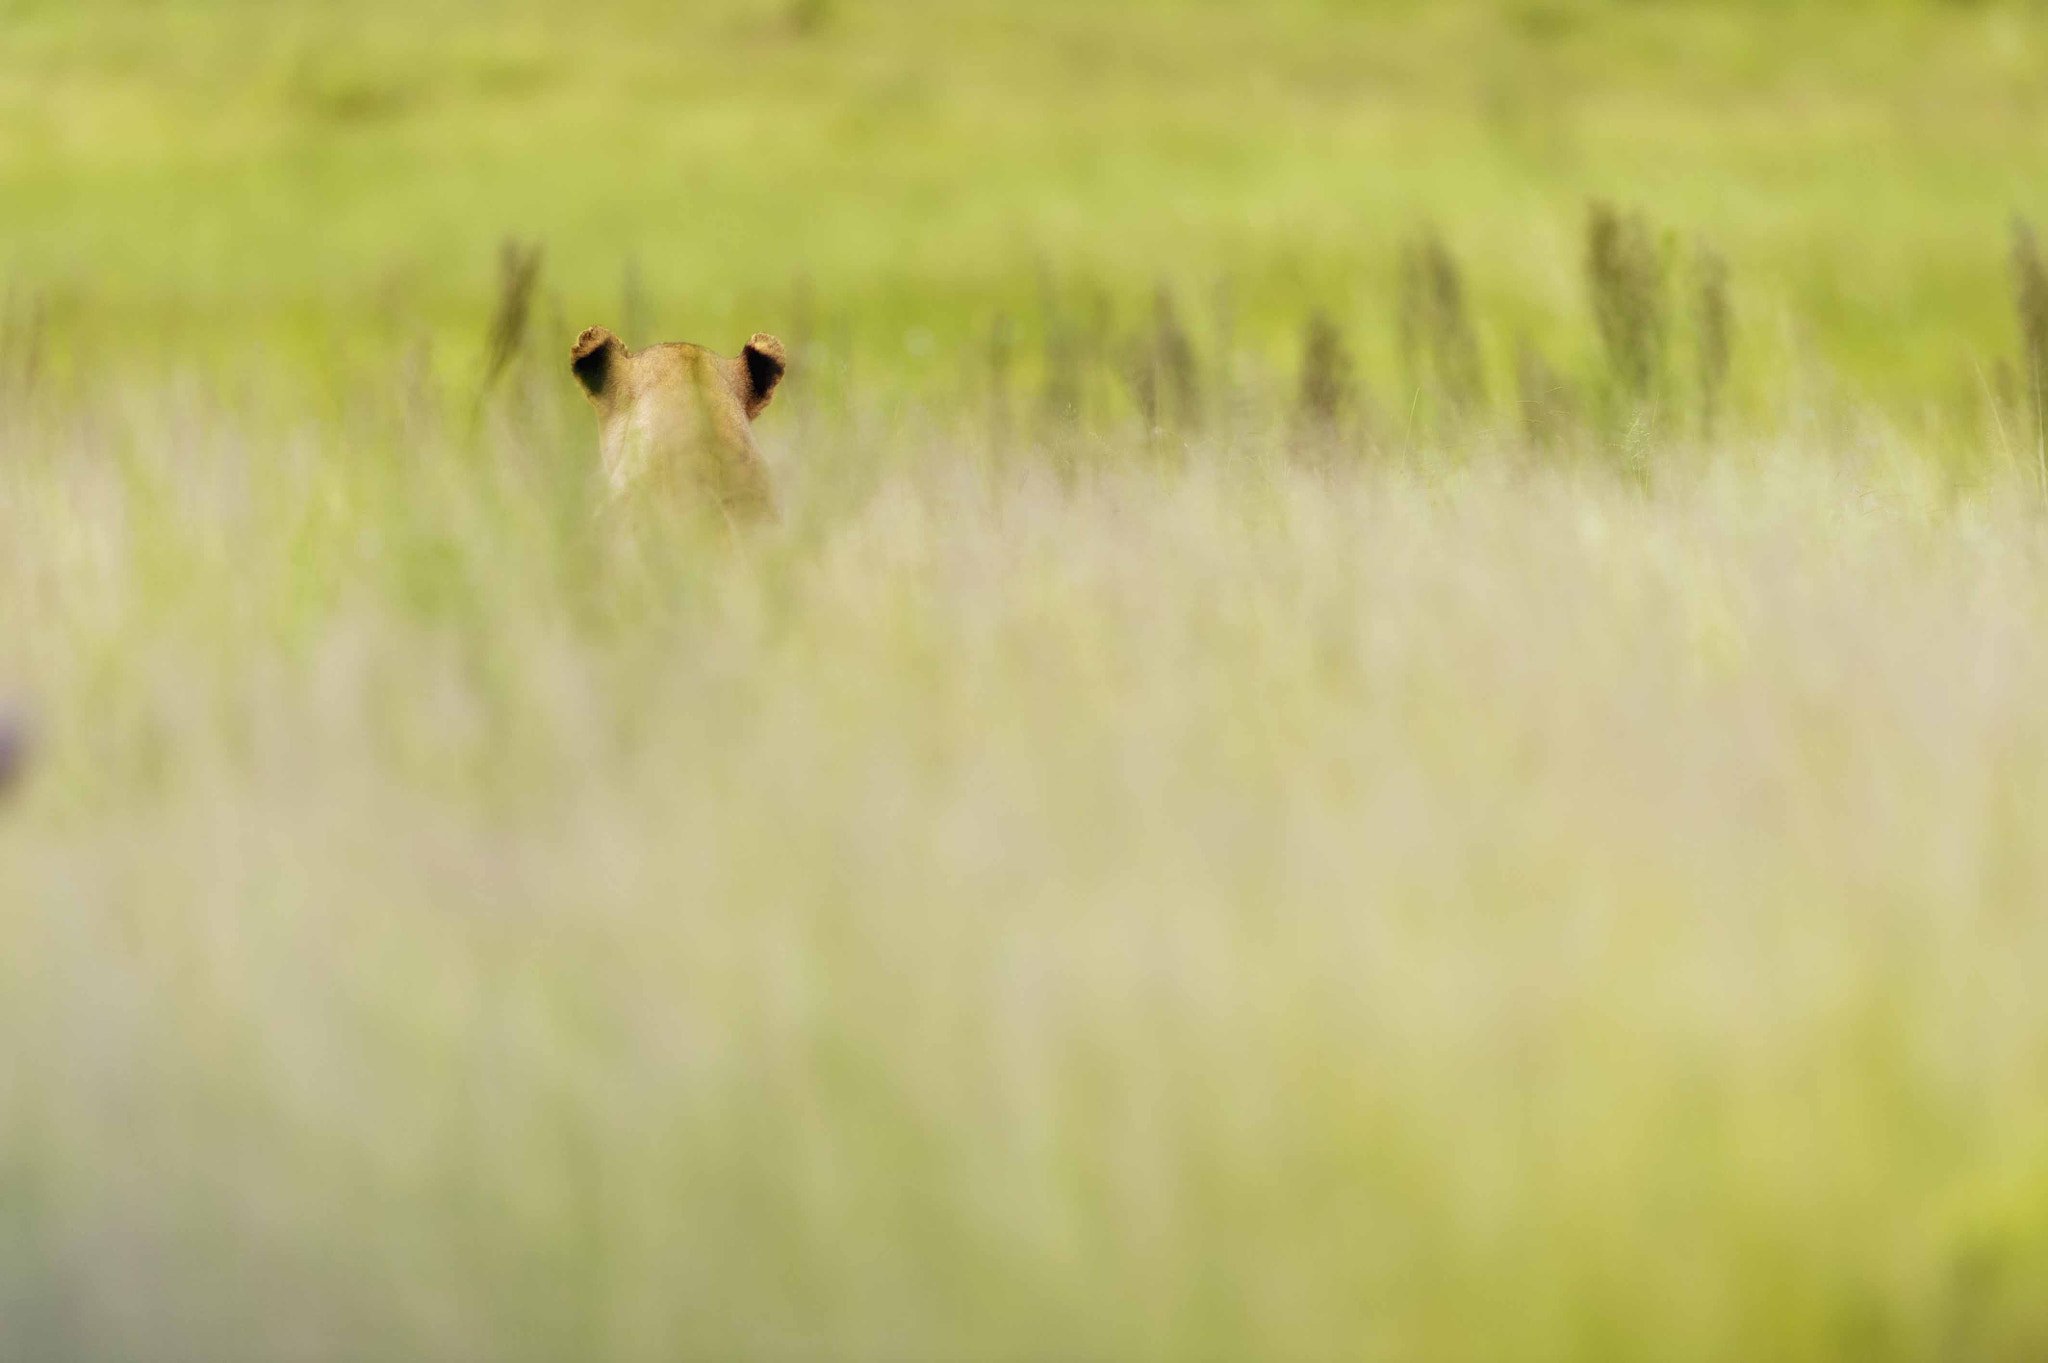 Photograph A game of waiting by Jitendra Sharma on 500px